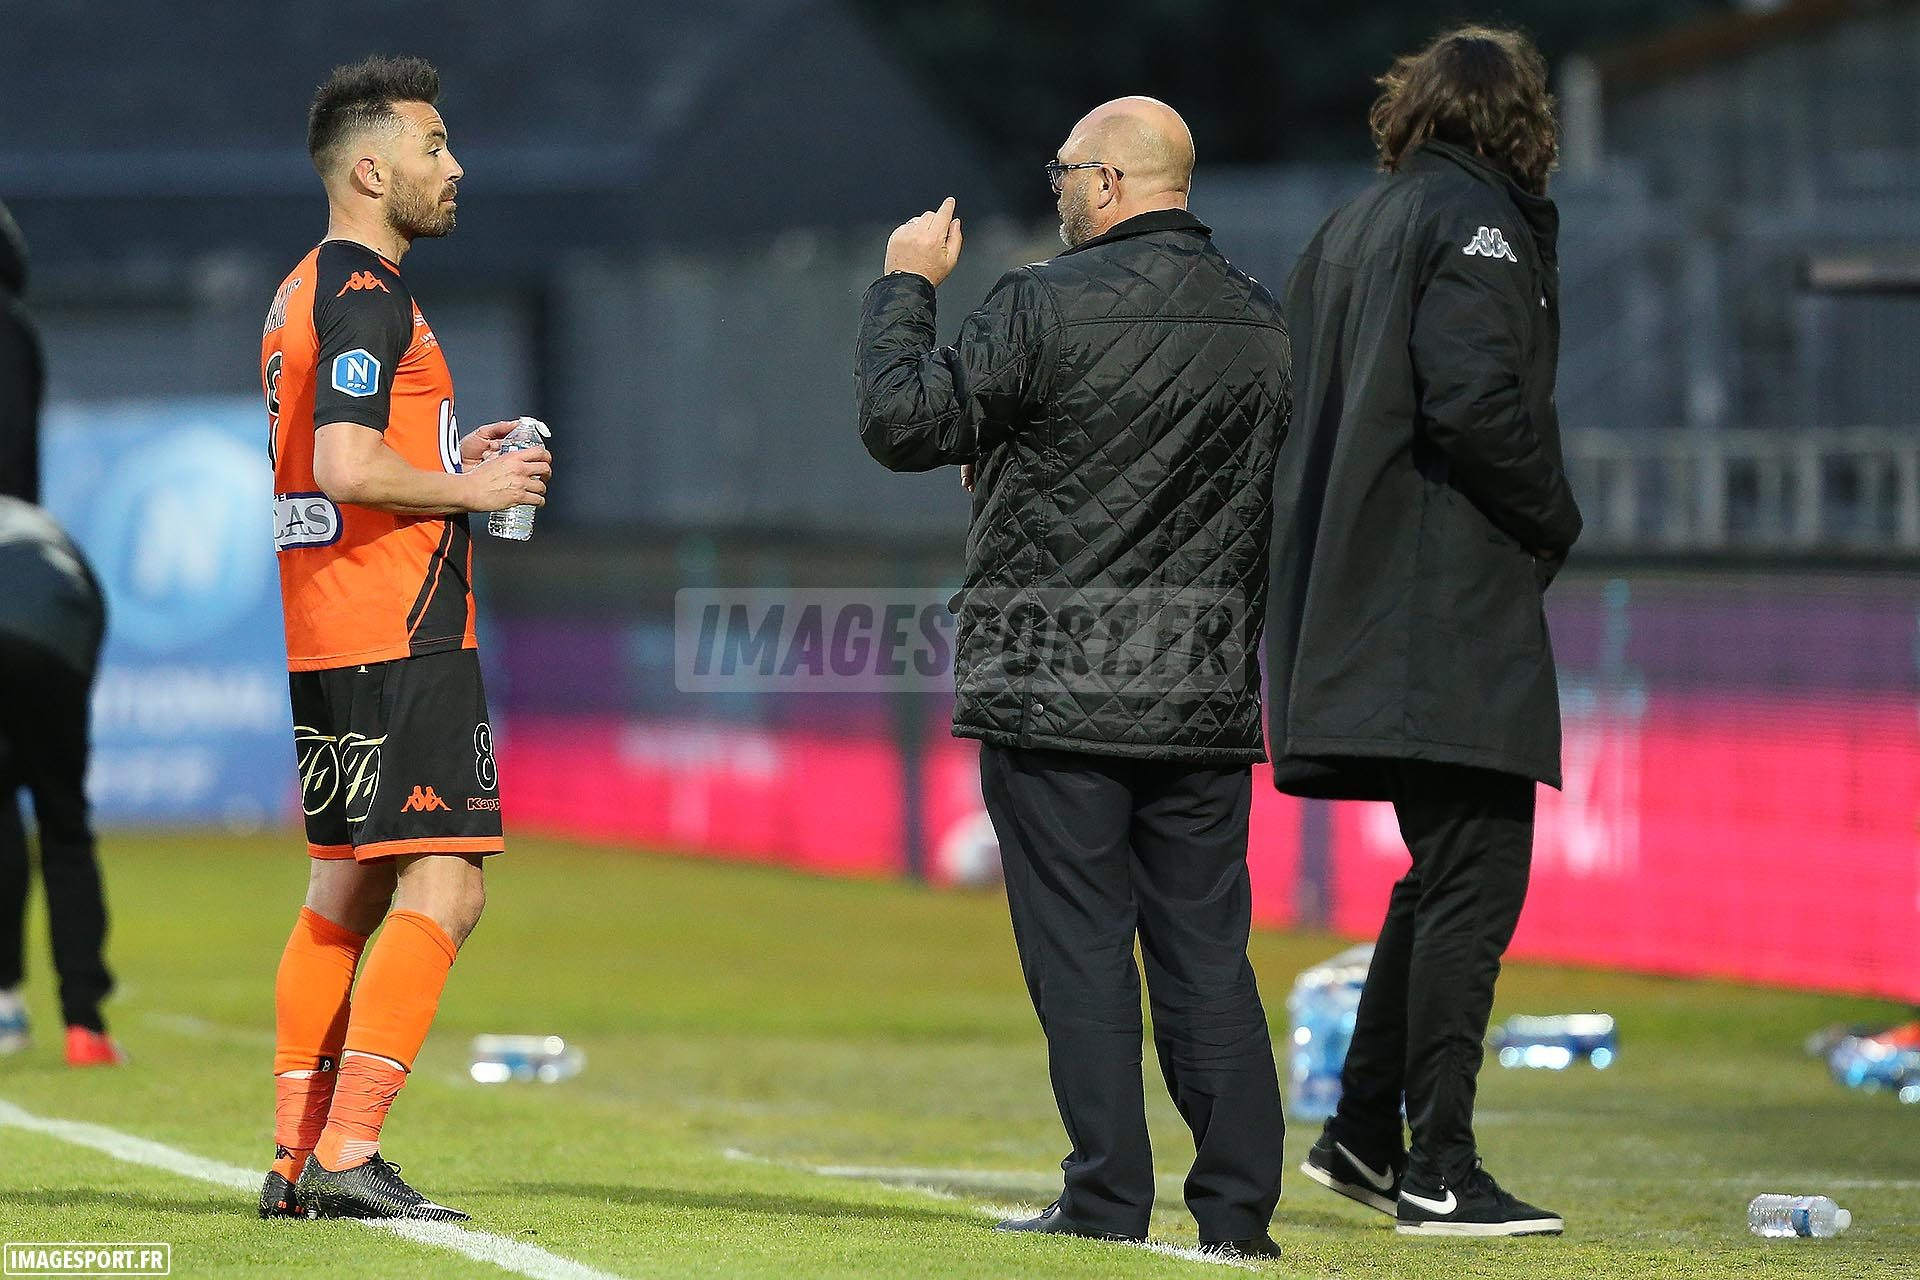 18-19-national-laval-rodez_9